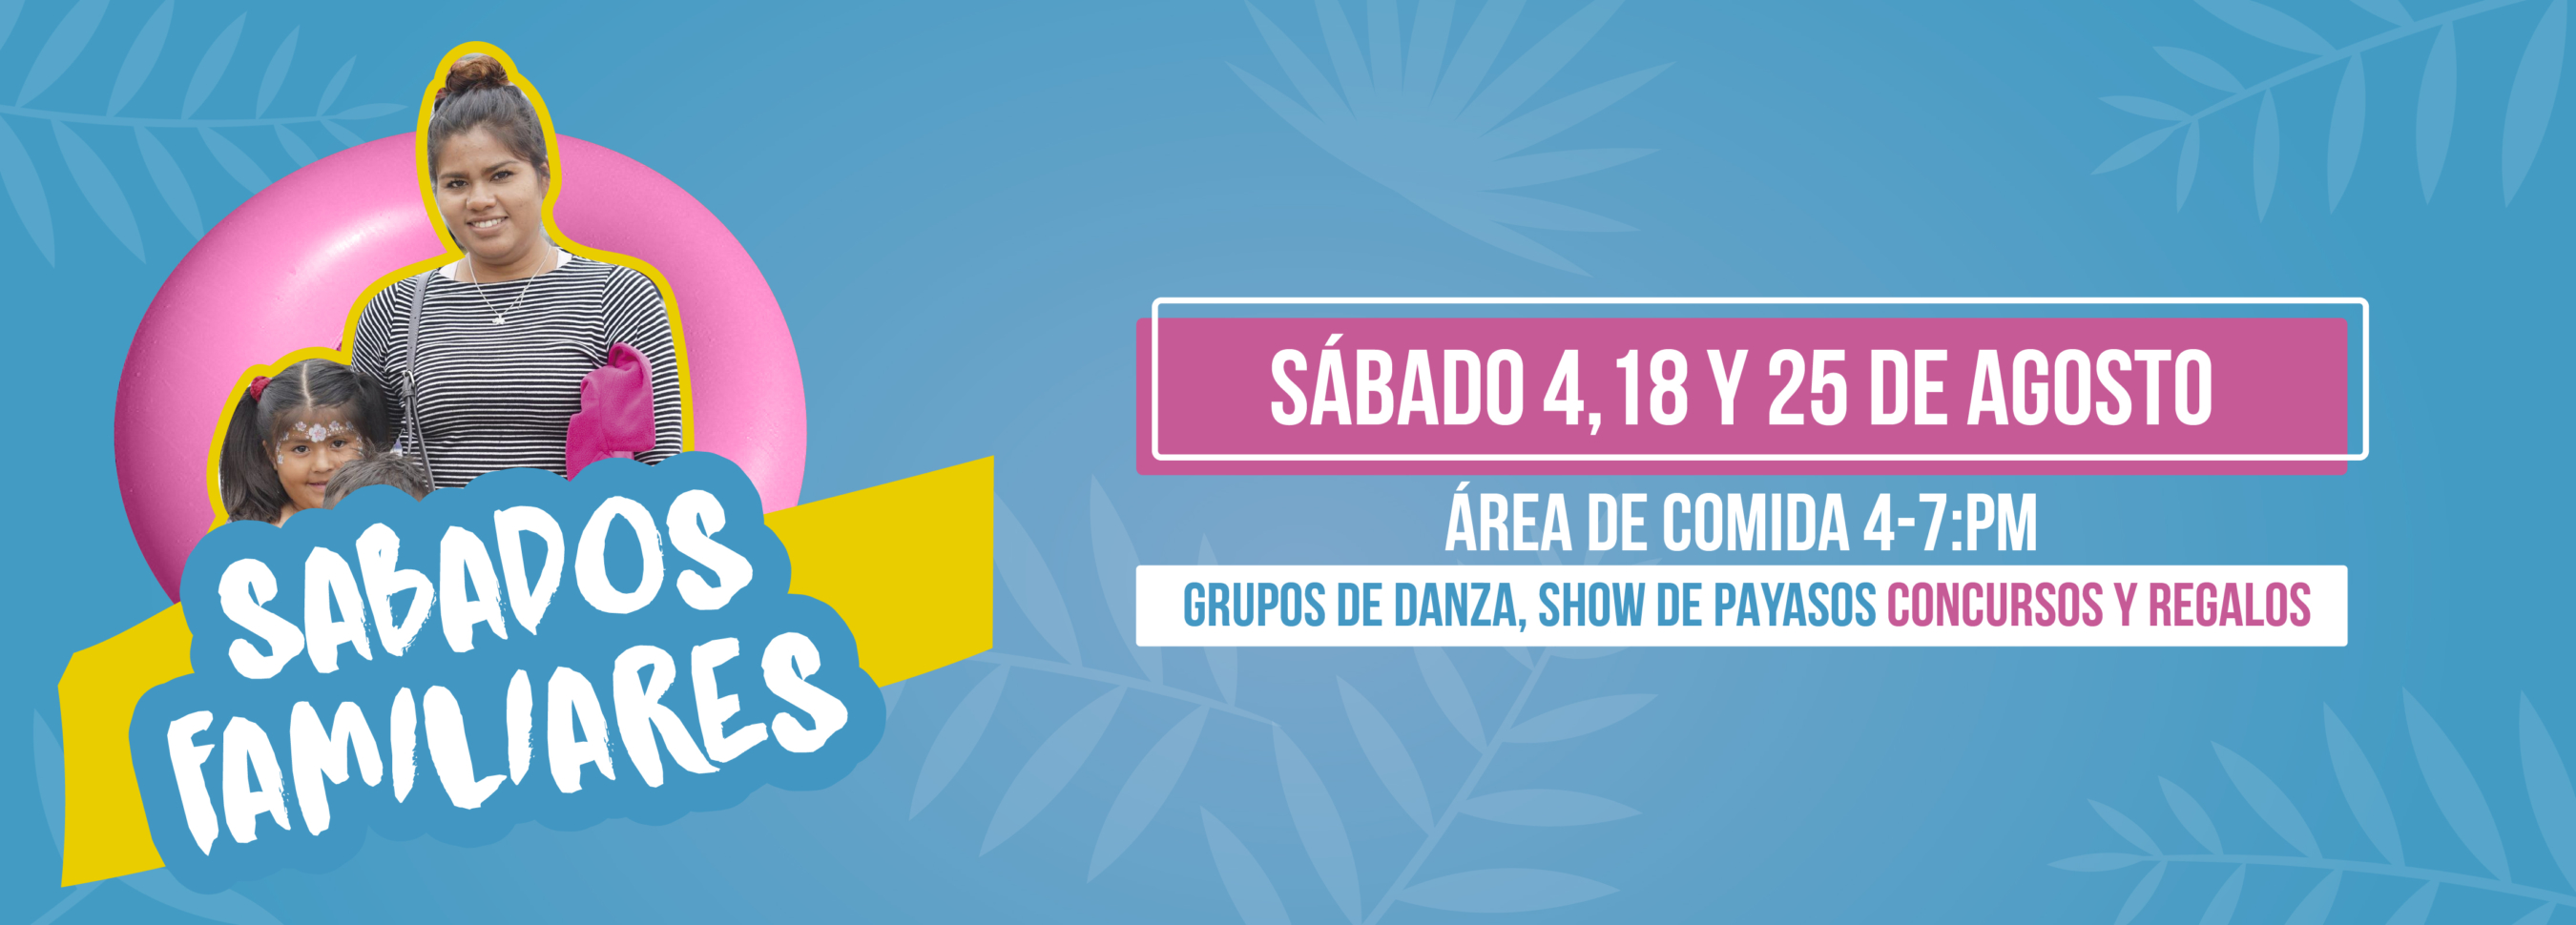 banners agosto-04